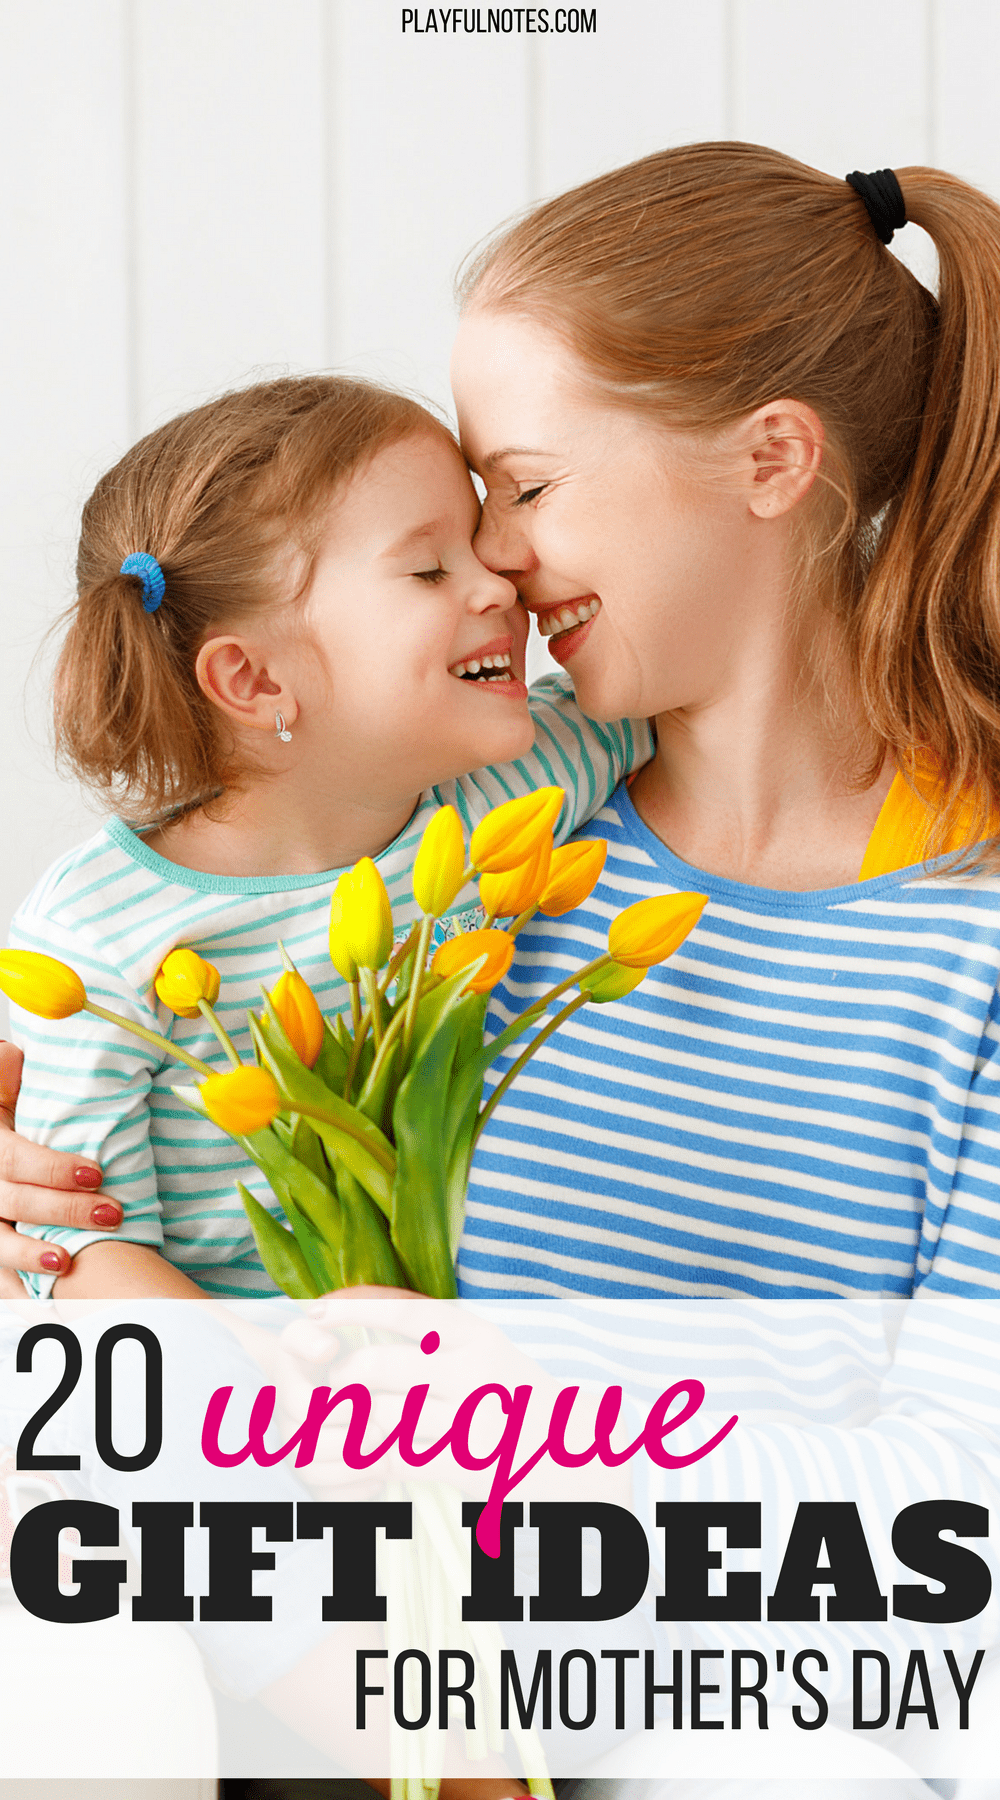 Mother's Day gift ideas: A list of awesome and unique gifts that any mom will love! | Gifts for moms #MothersDay #GiftsForMoms